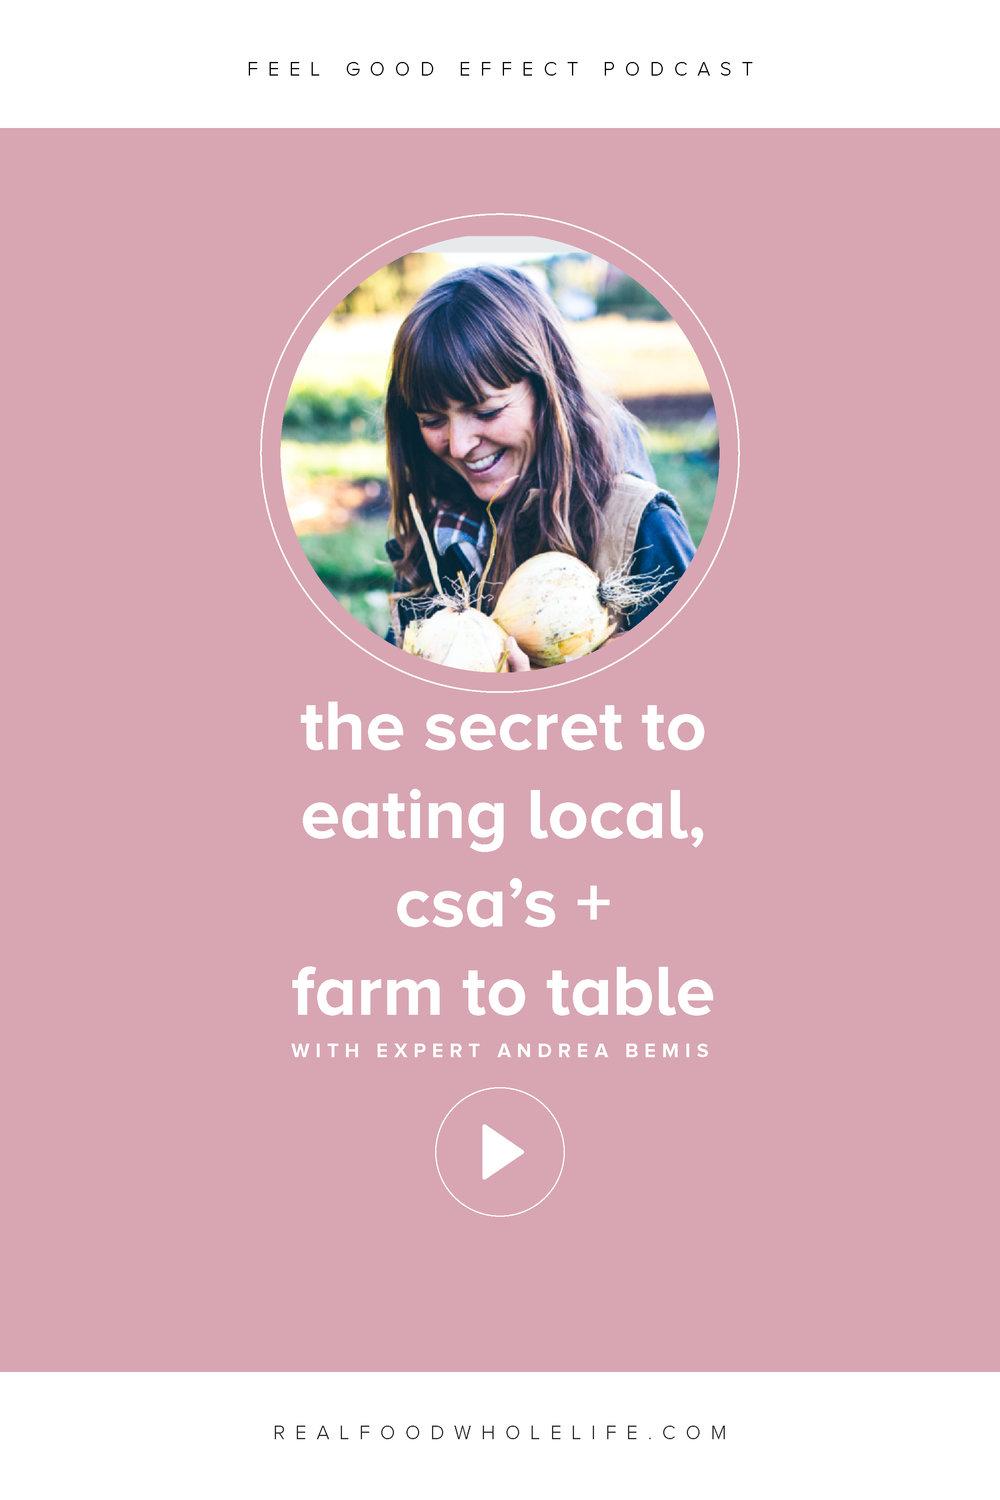 The Secret to Eating Local, CSA's, Farm to Table. Andrea Bemis, Dishing Up the Dirt, Feel Good Effect Podcast